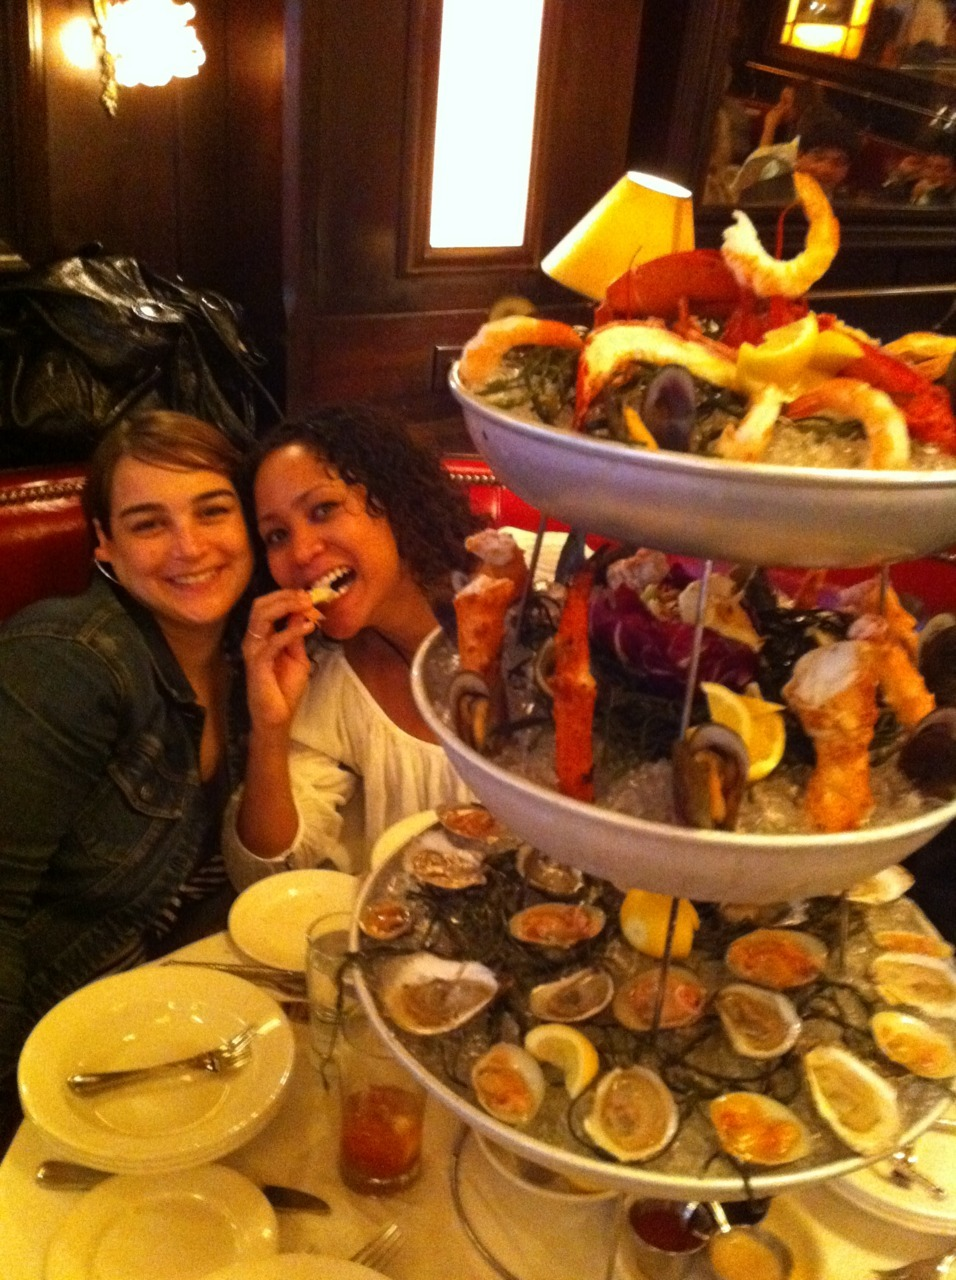 Welcome to the penthouse of the shellfish tower.